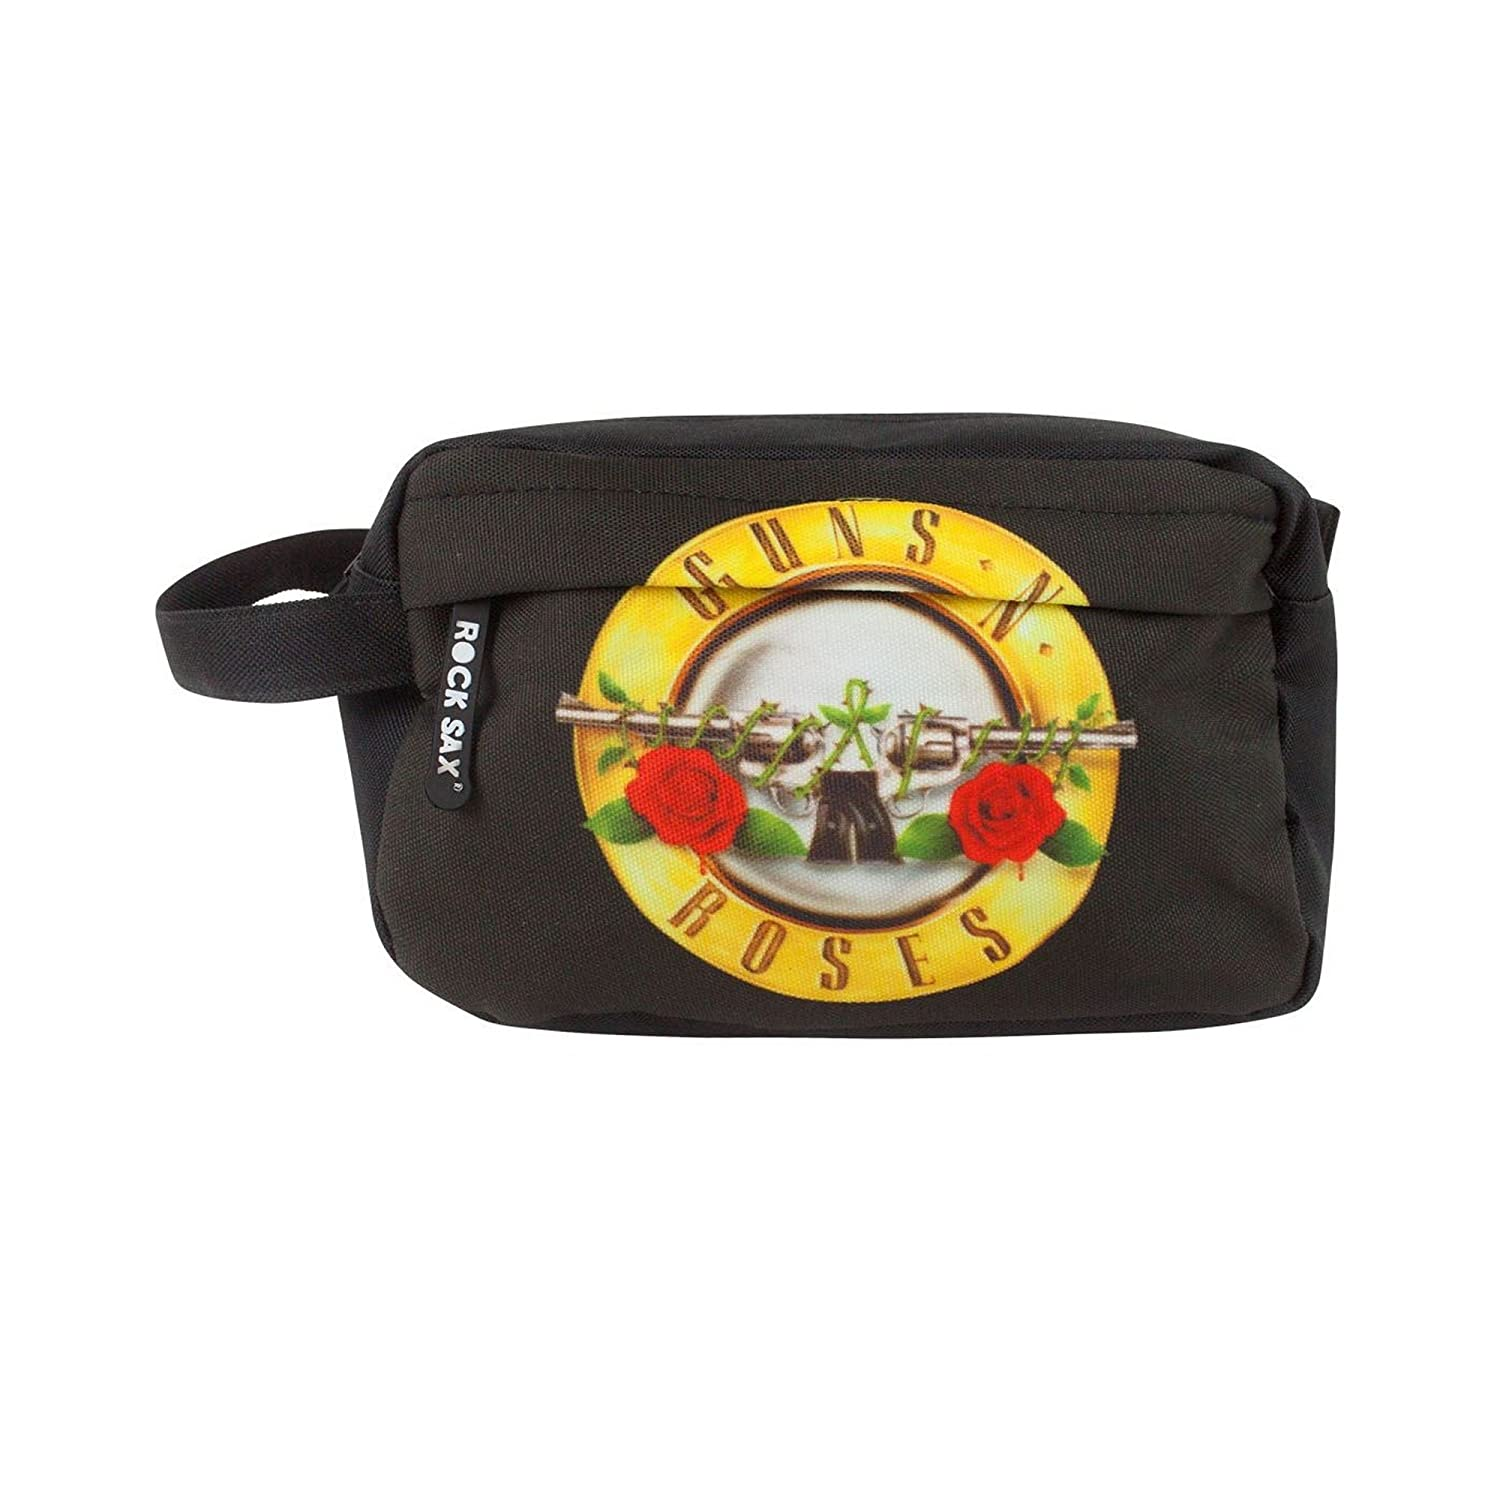 Rock Sax Official - Bullet - Beauty case da viaggio dei Guns N Roses - Unisex UTNS4339_1